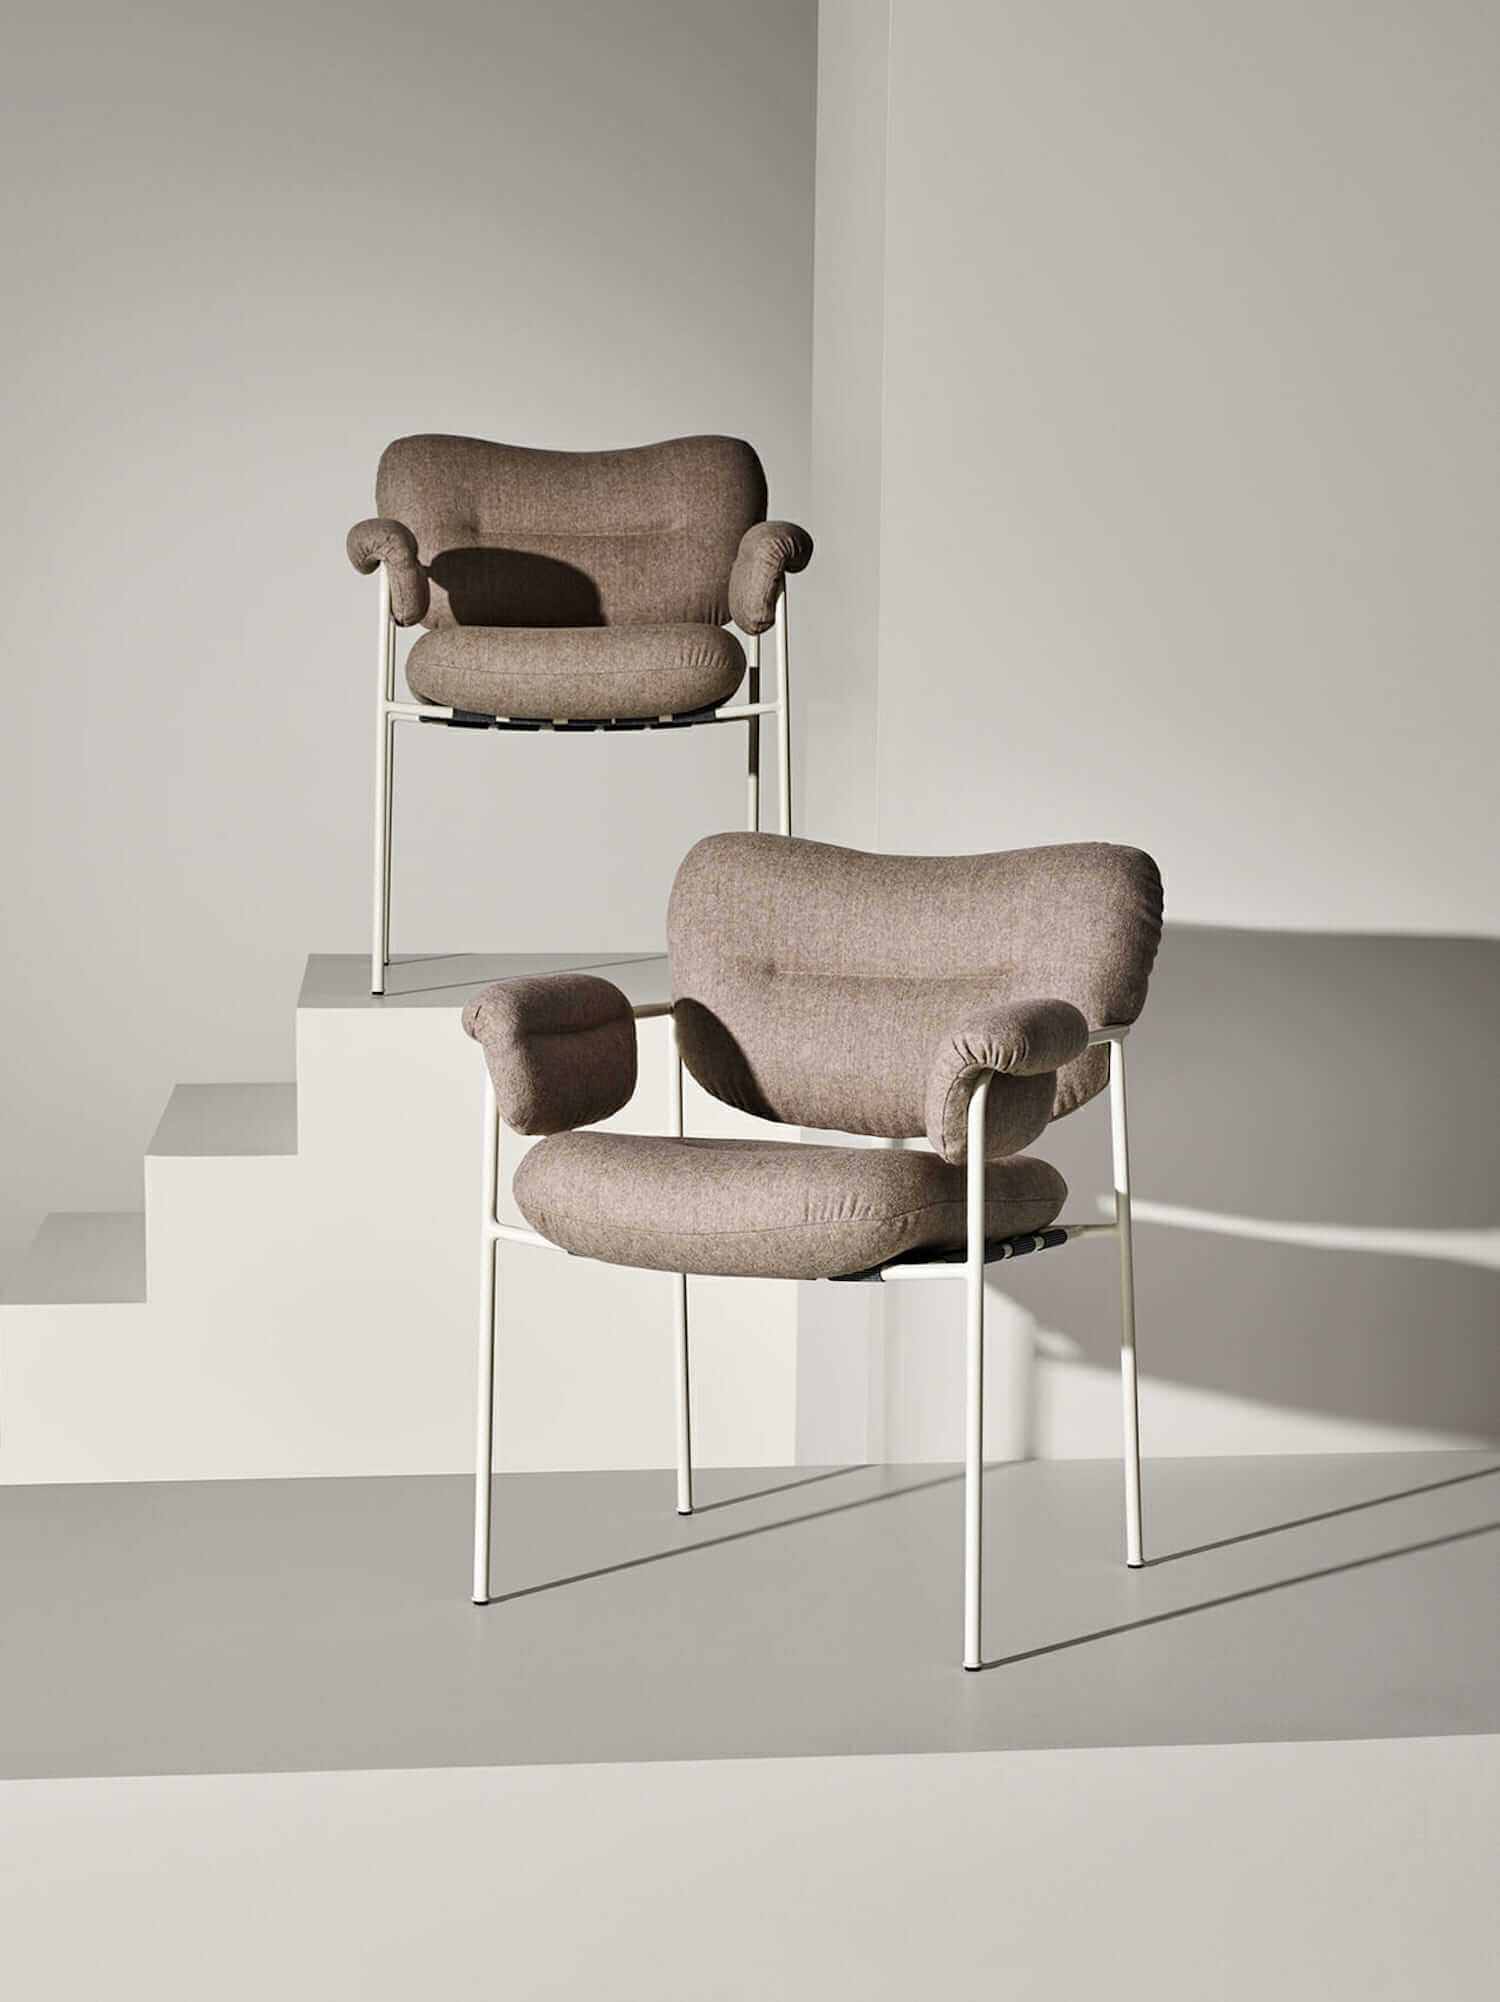 est living design directory spisolini chair fogia andreas engesvik 1